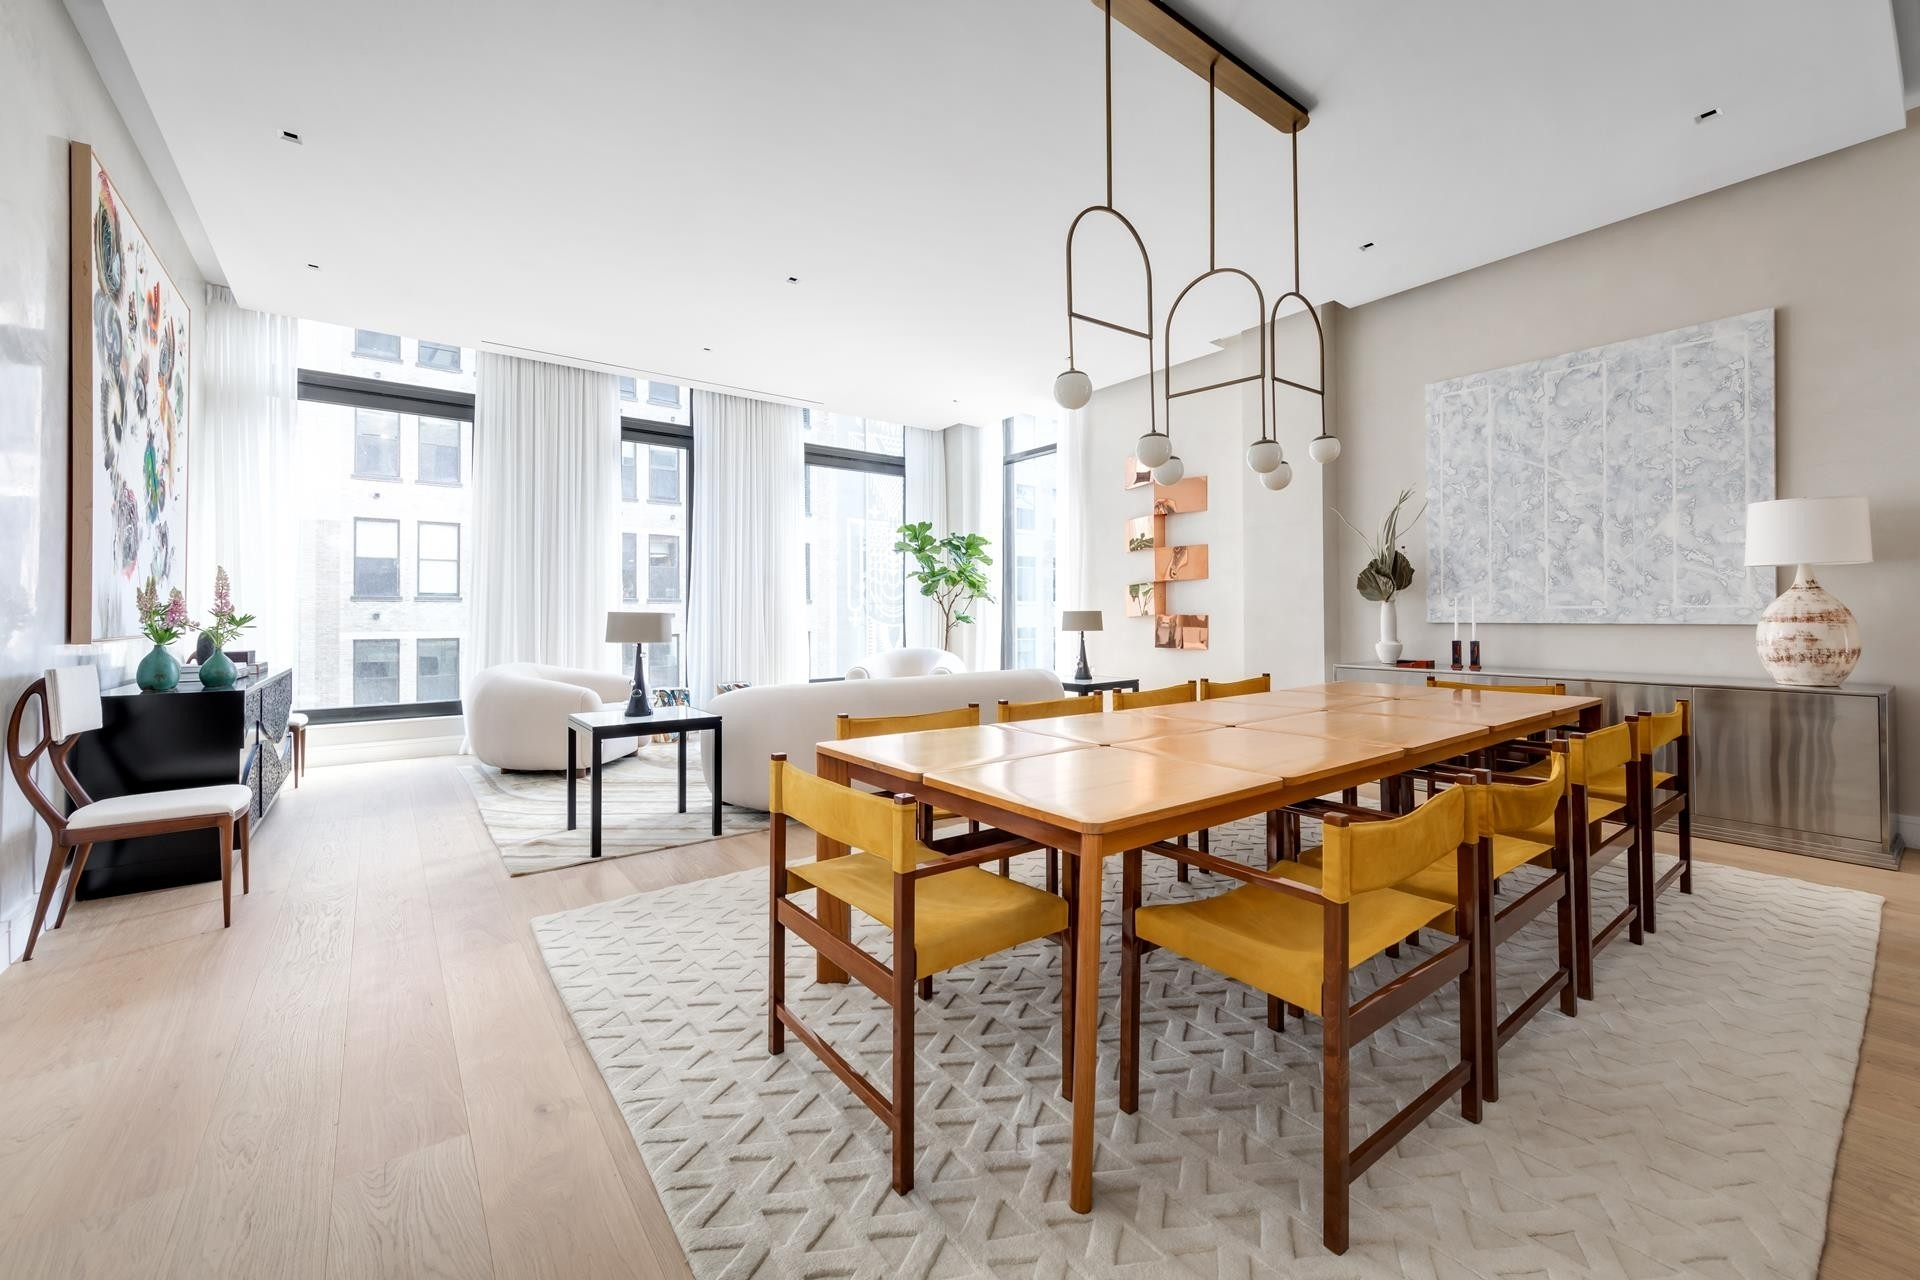 2. Condominiums for Sale at 111 Leroy St, 4 West Village, New York, NY 10014